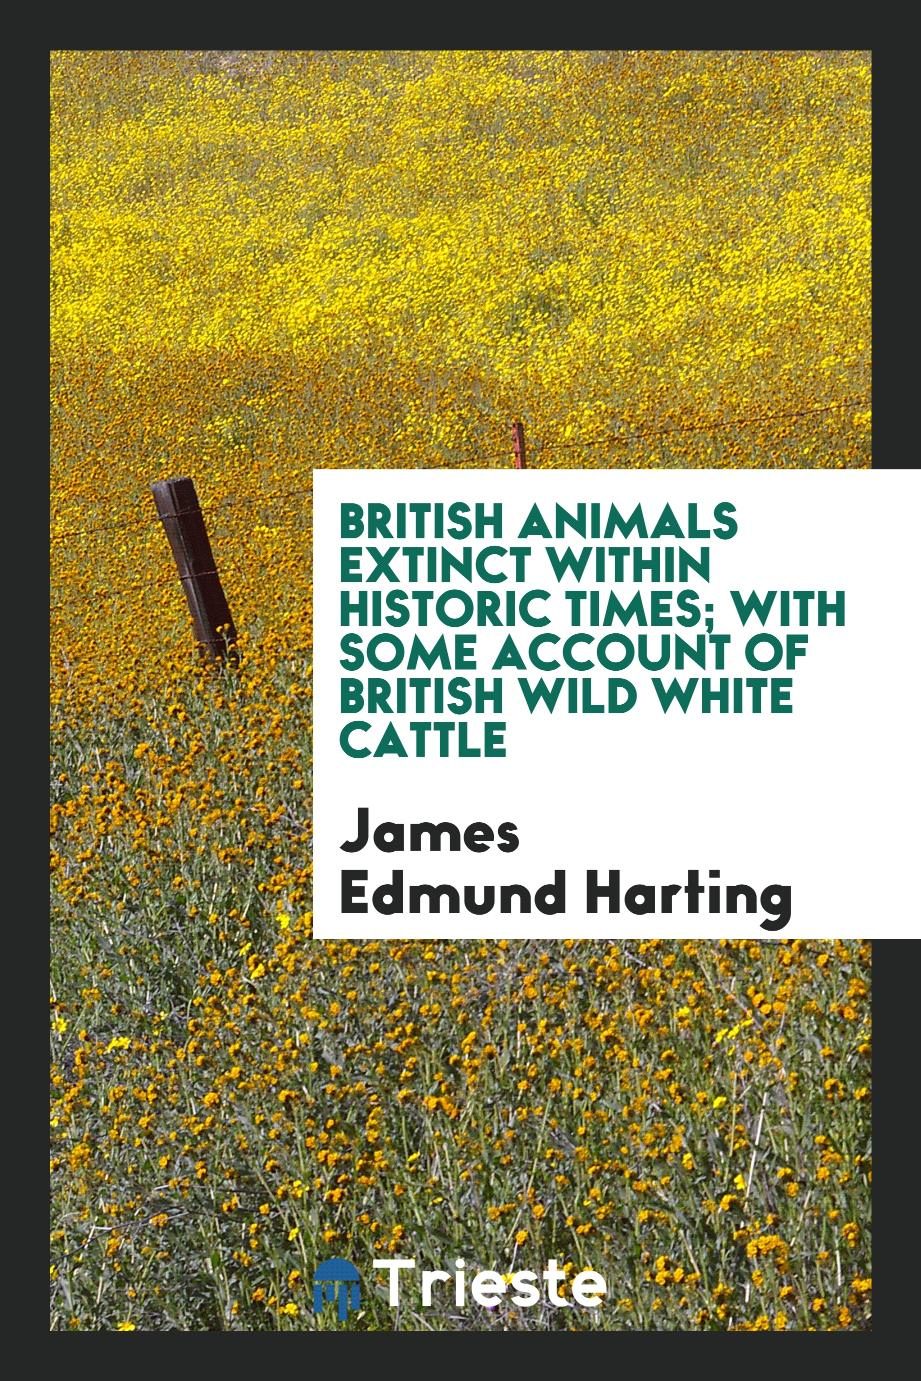 British animals extinct within historic times; with some account of British wild white cattle